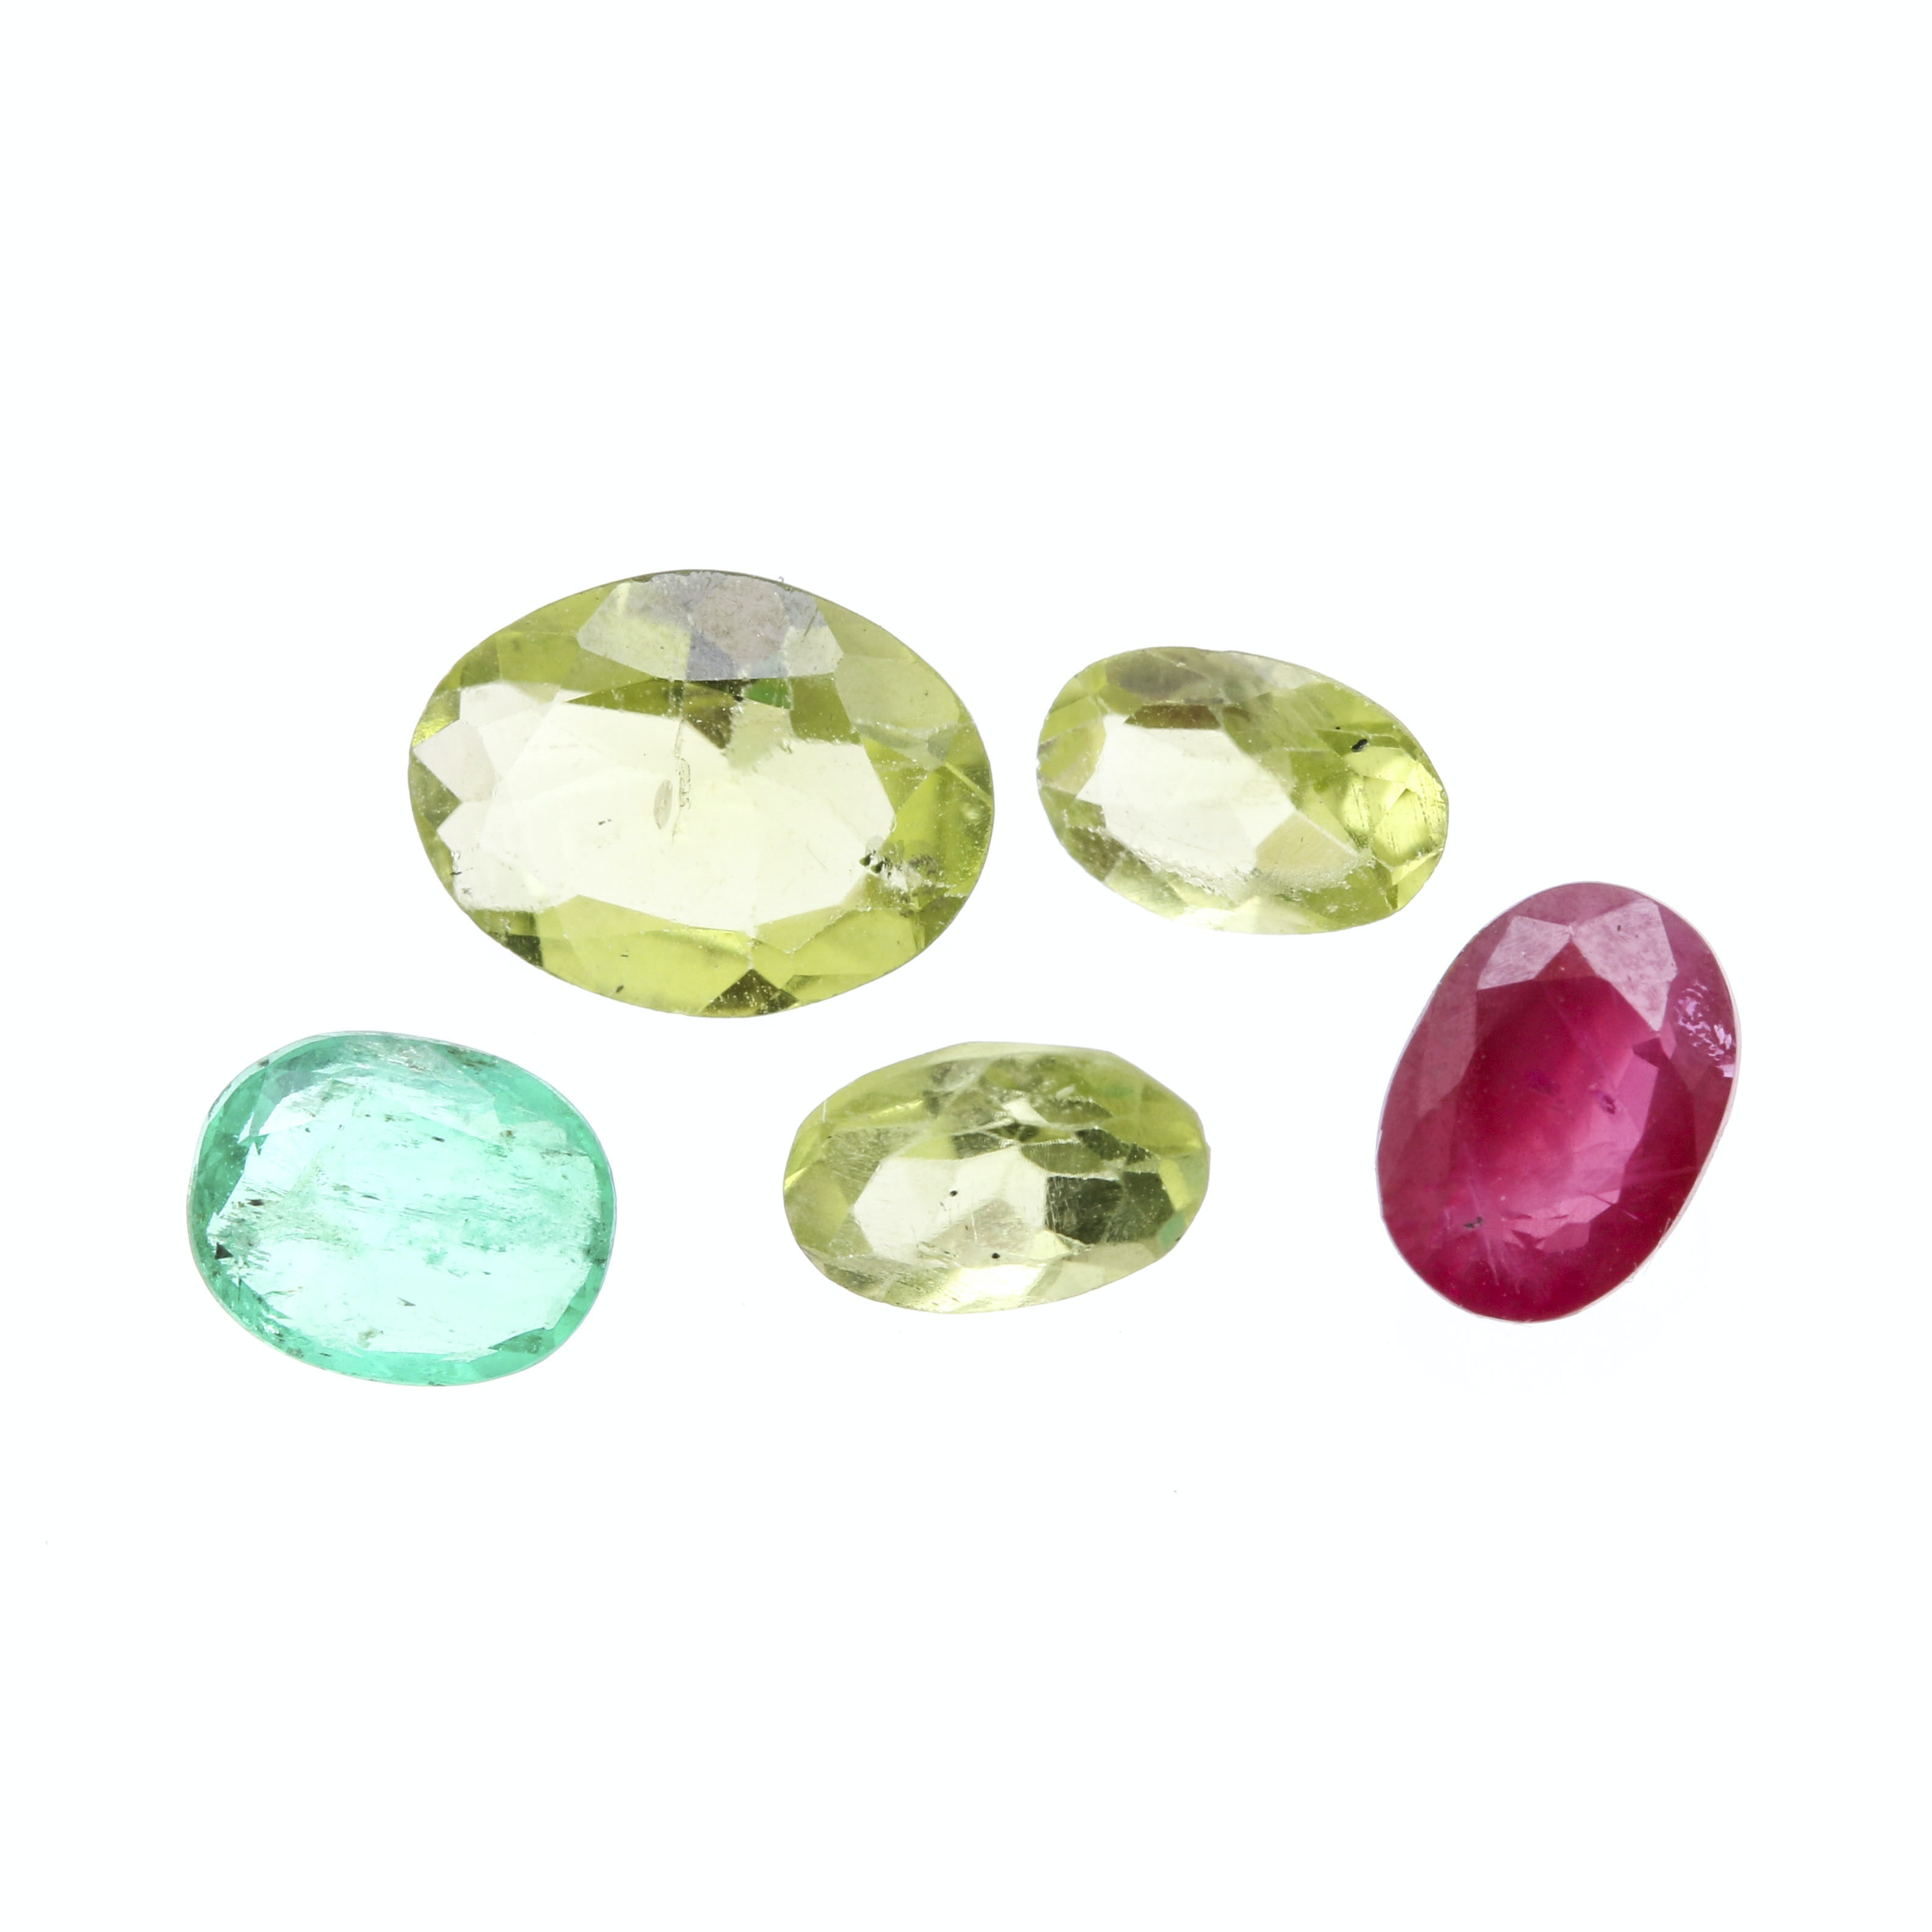 Assortment of Loose Gemstones featuring Ruby, Peridot, and Emerald